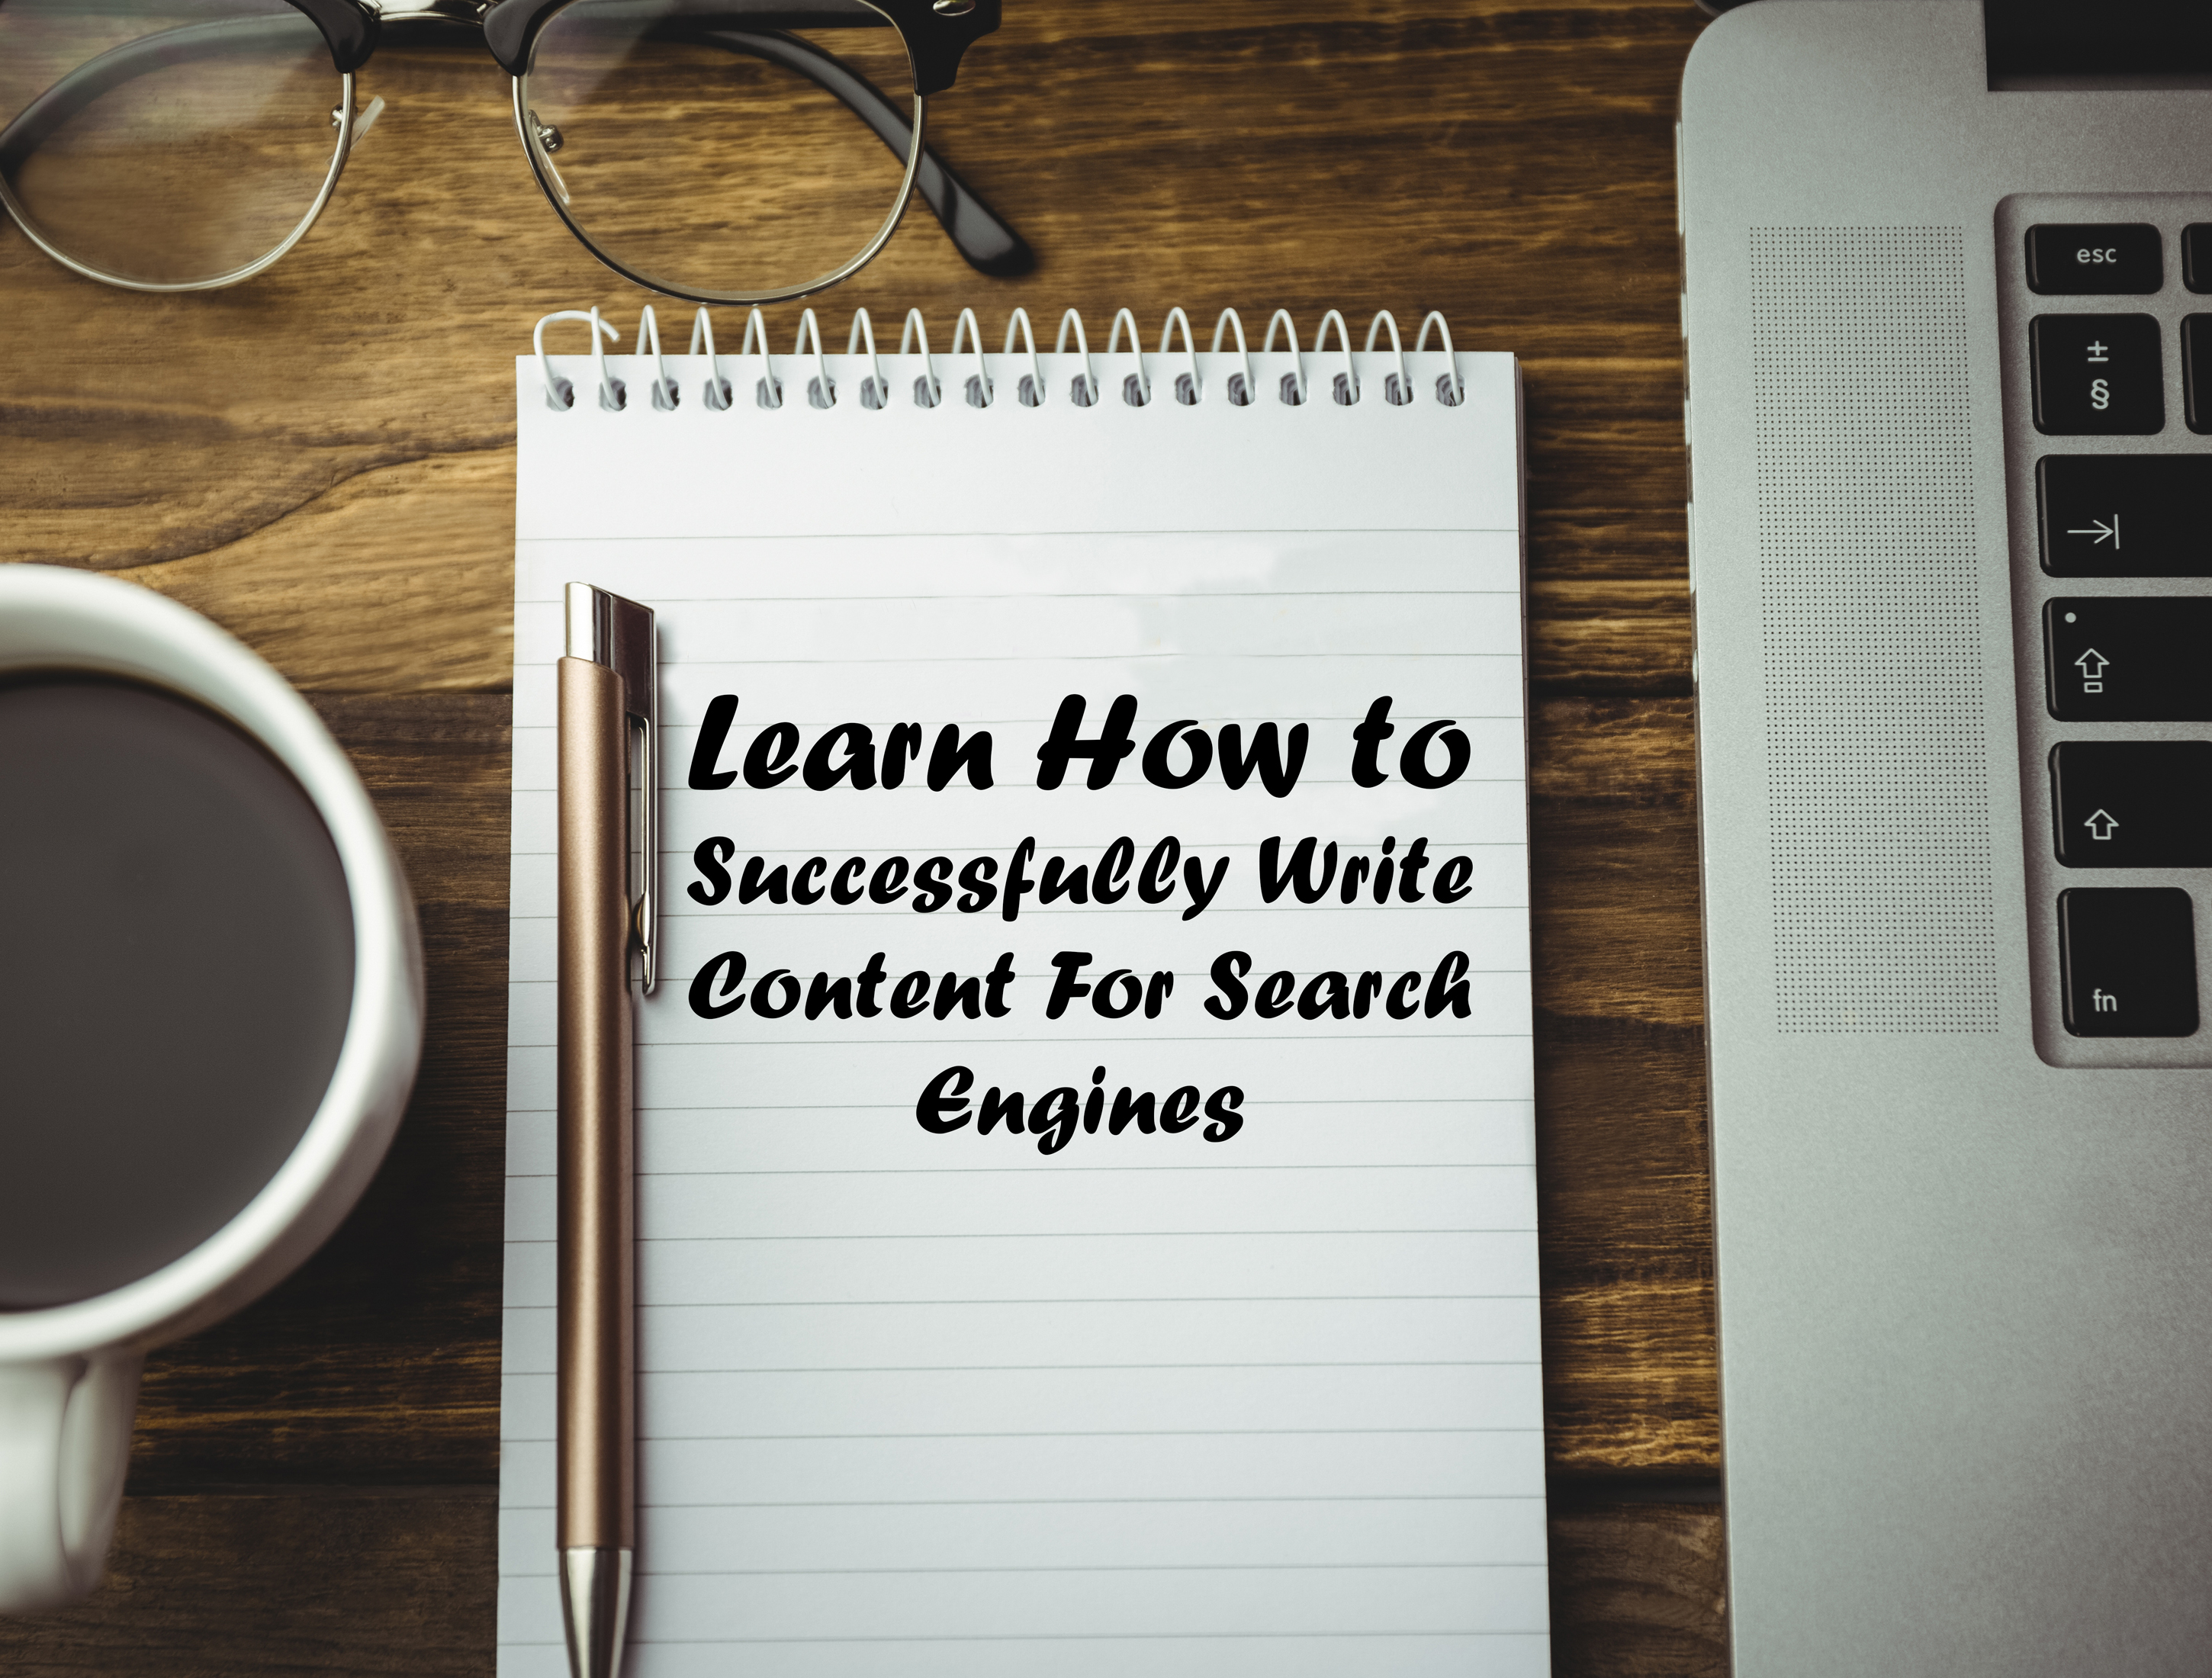 Learn how to successfully write content for search engines